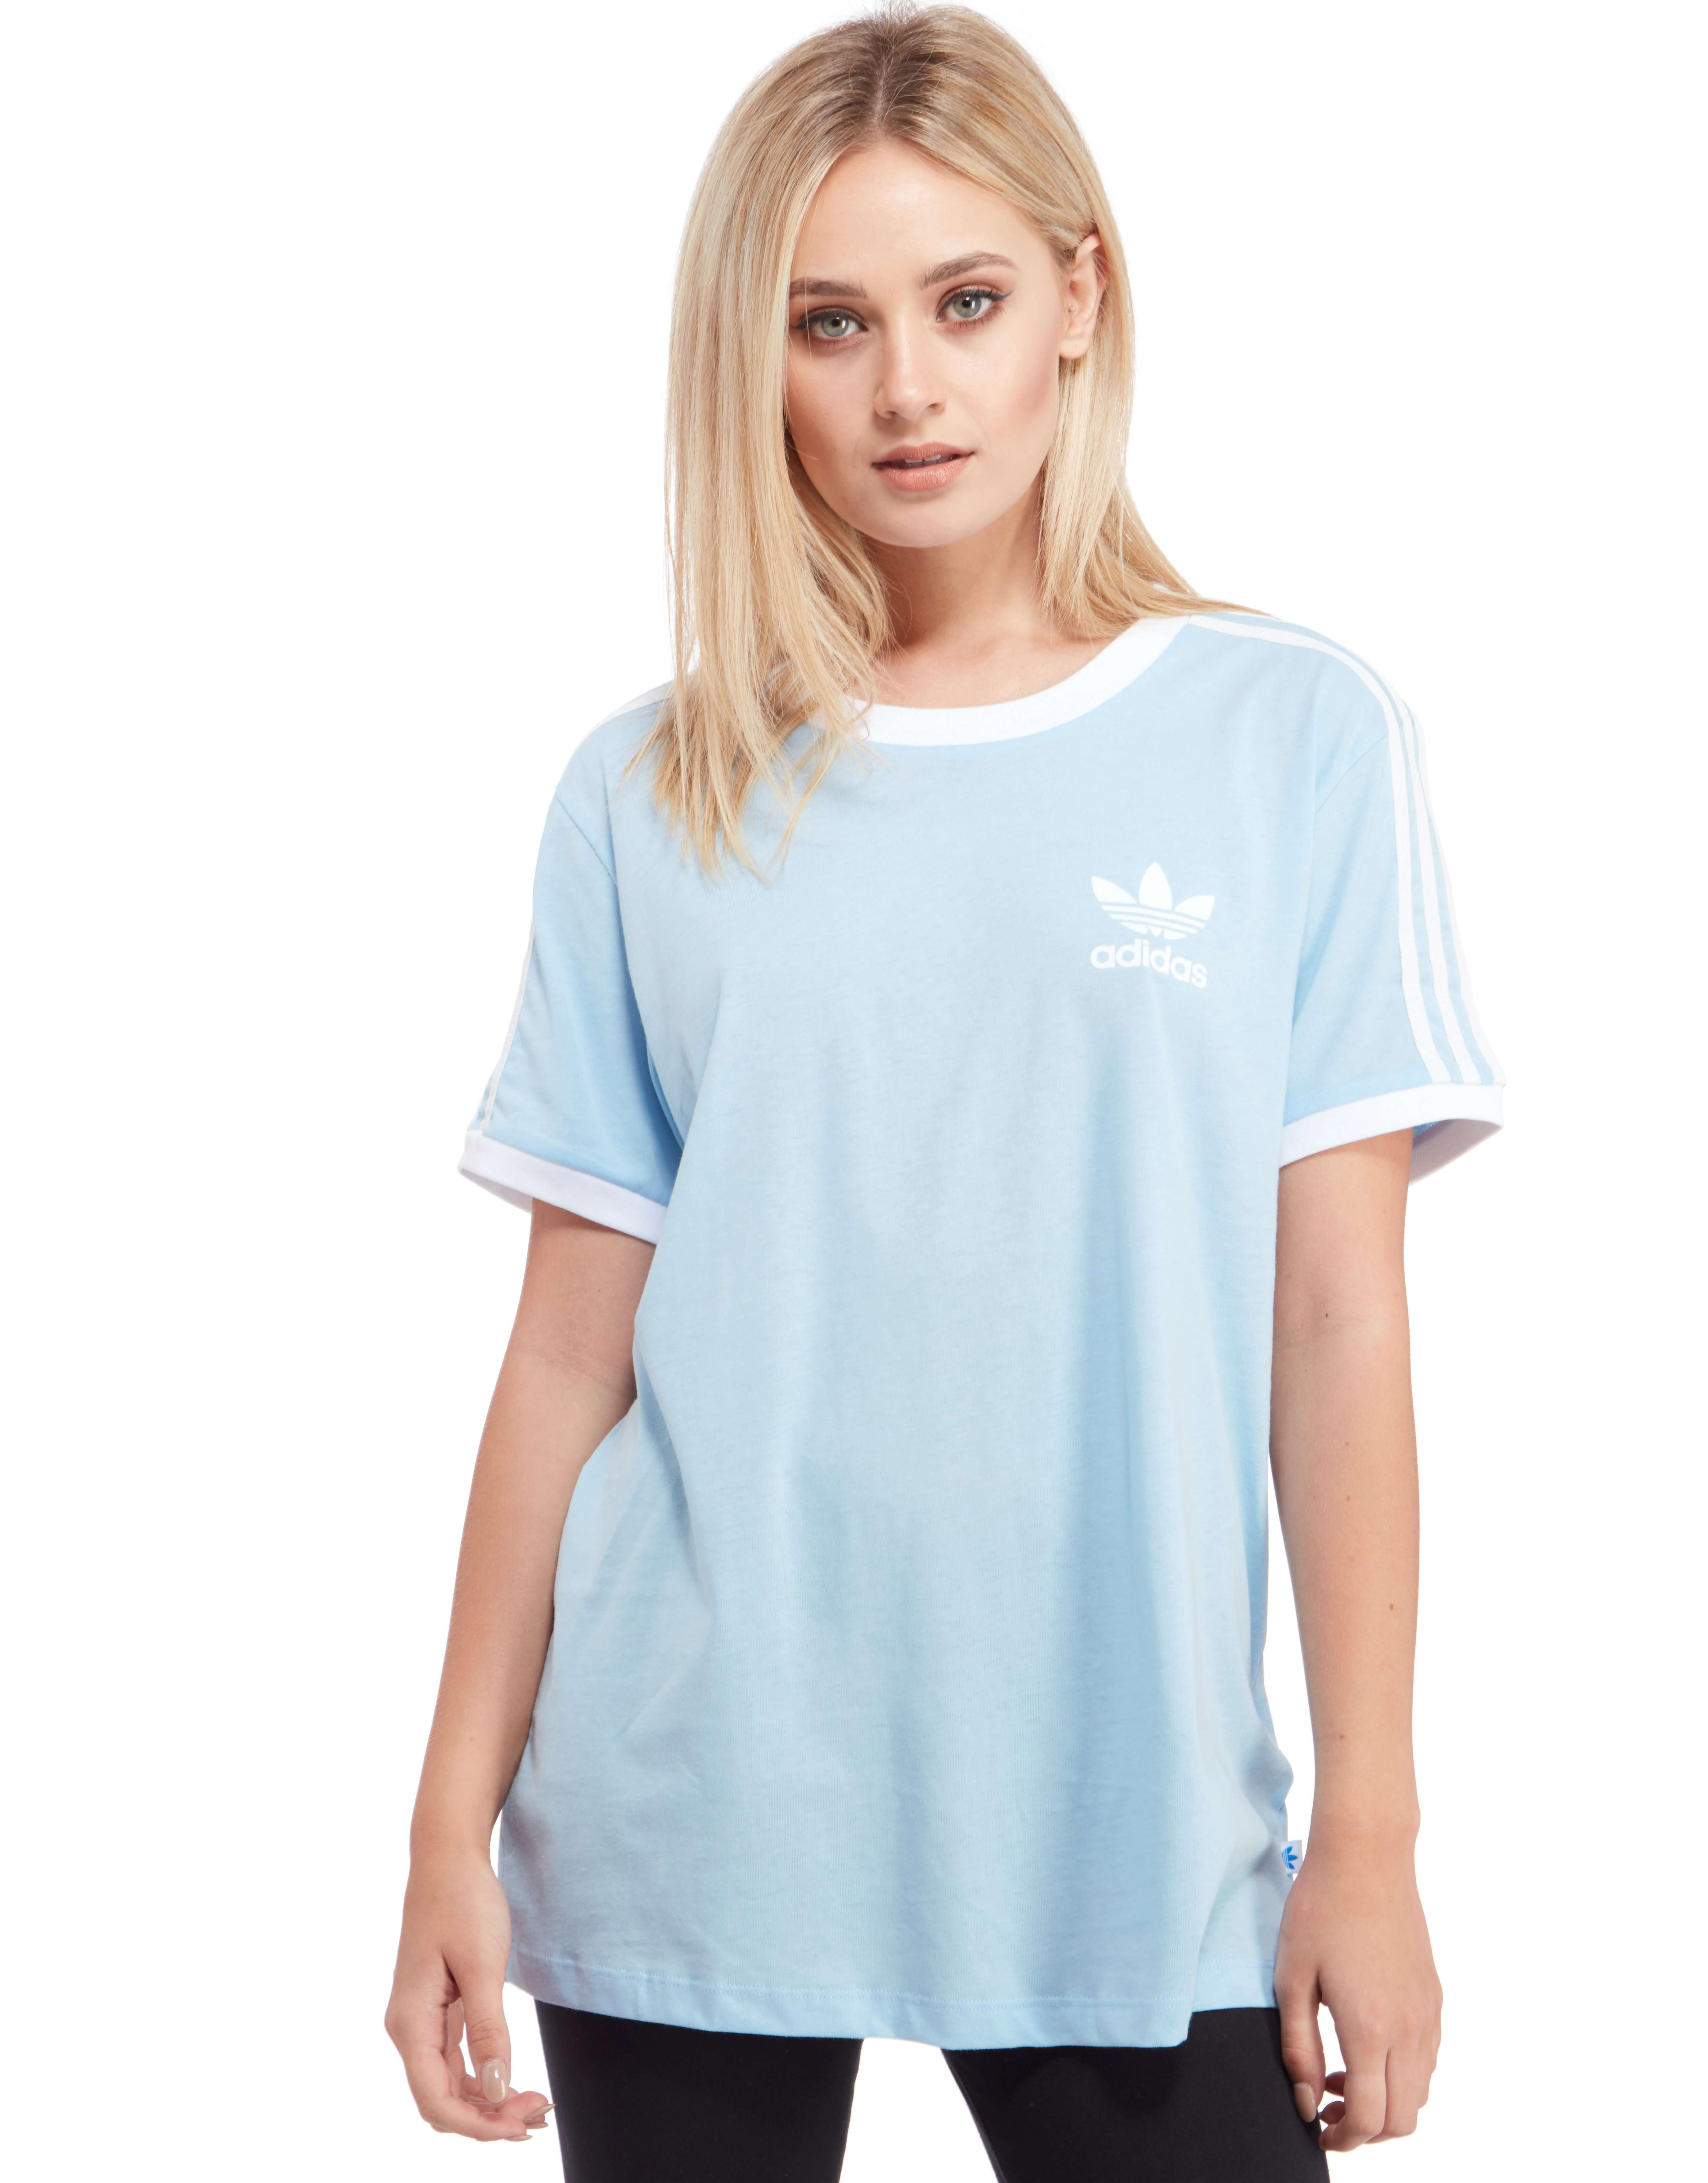 adidas california t shirt jd sports